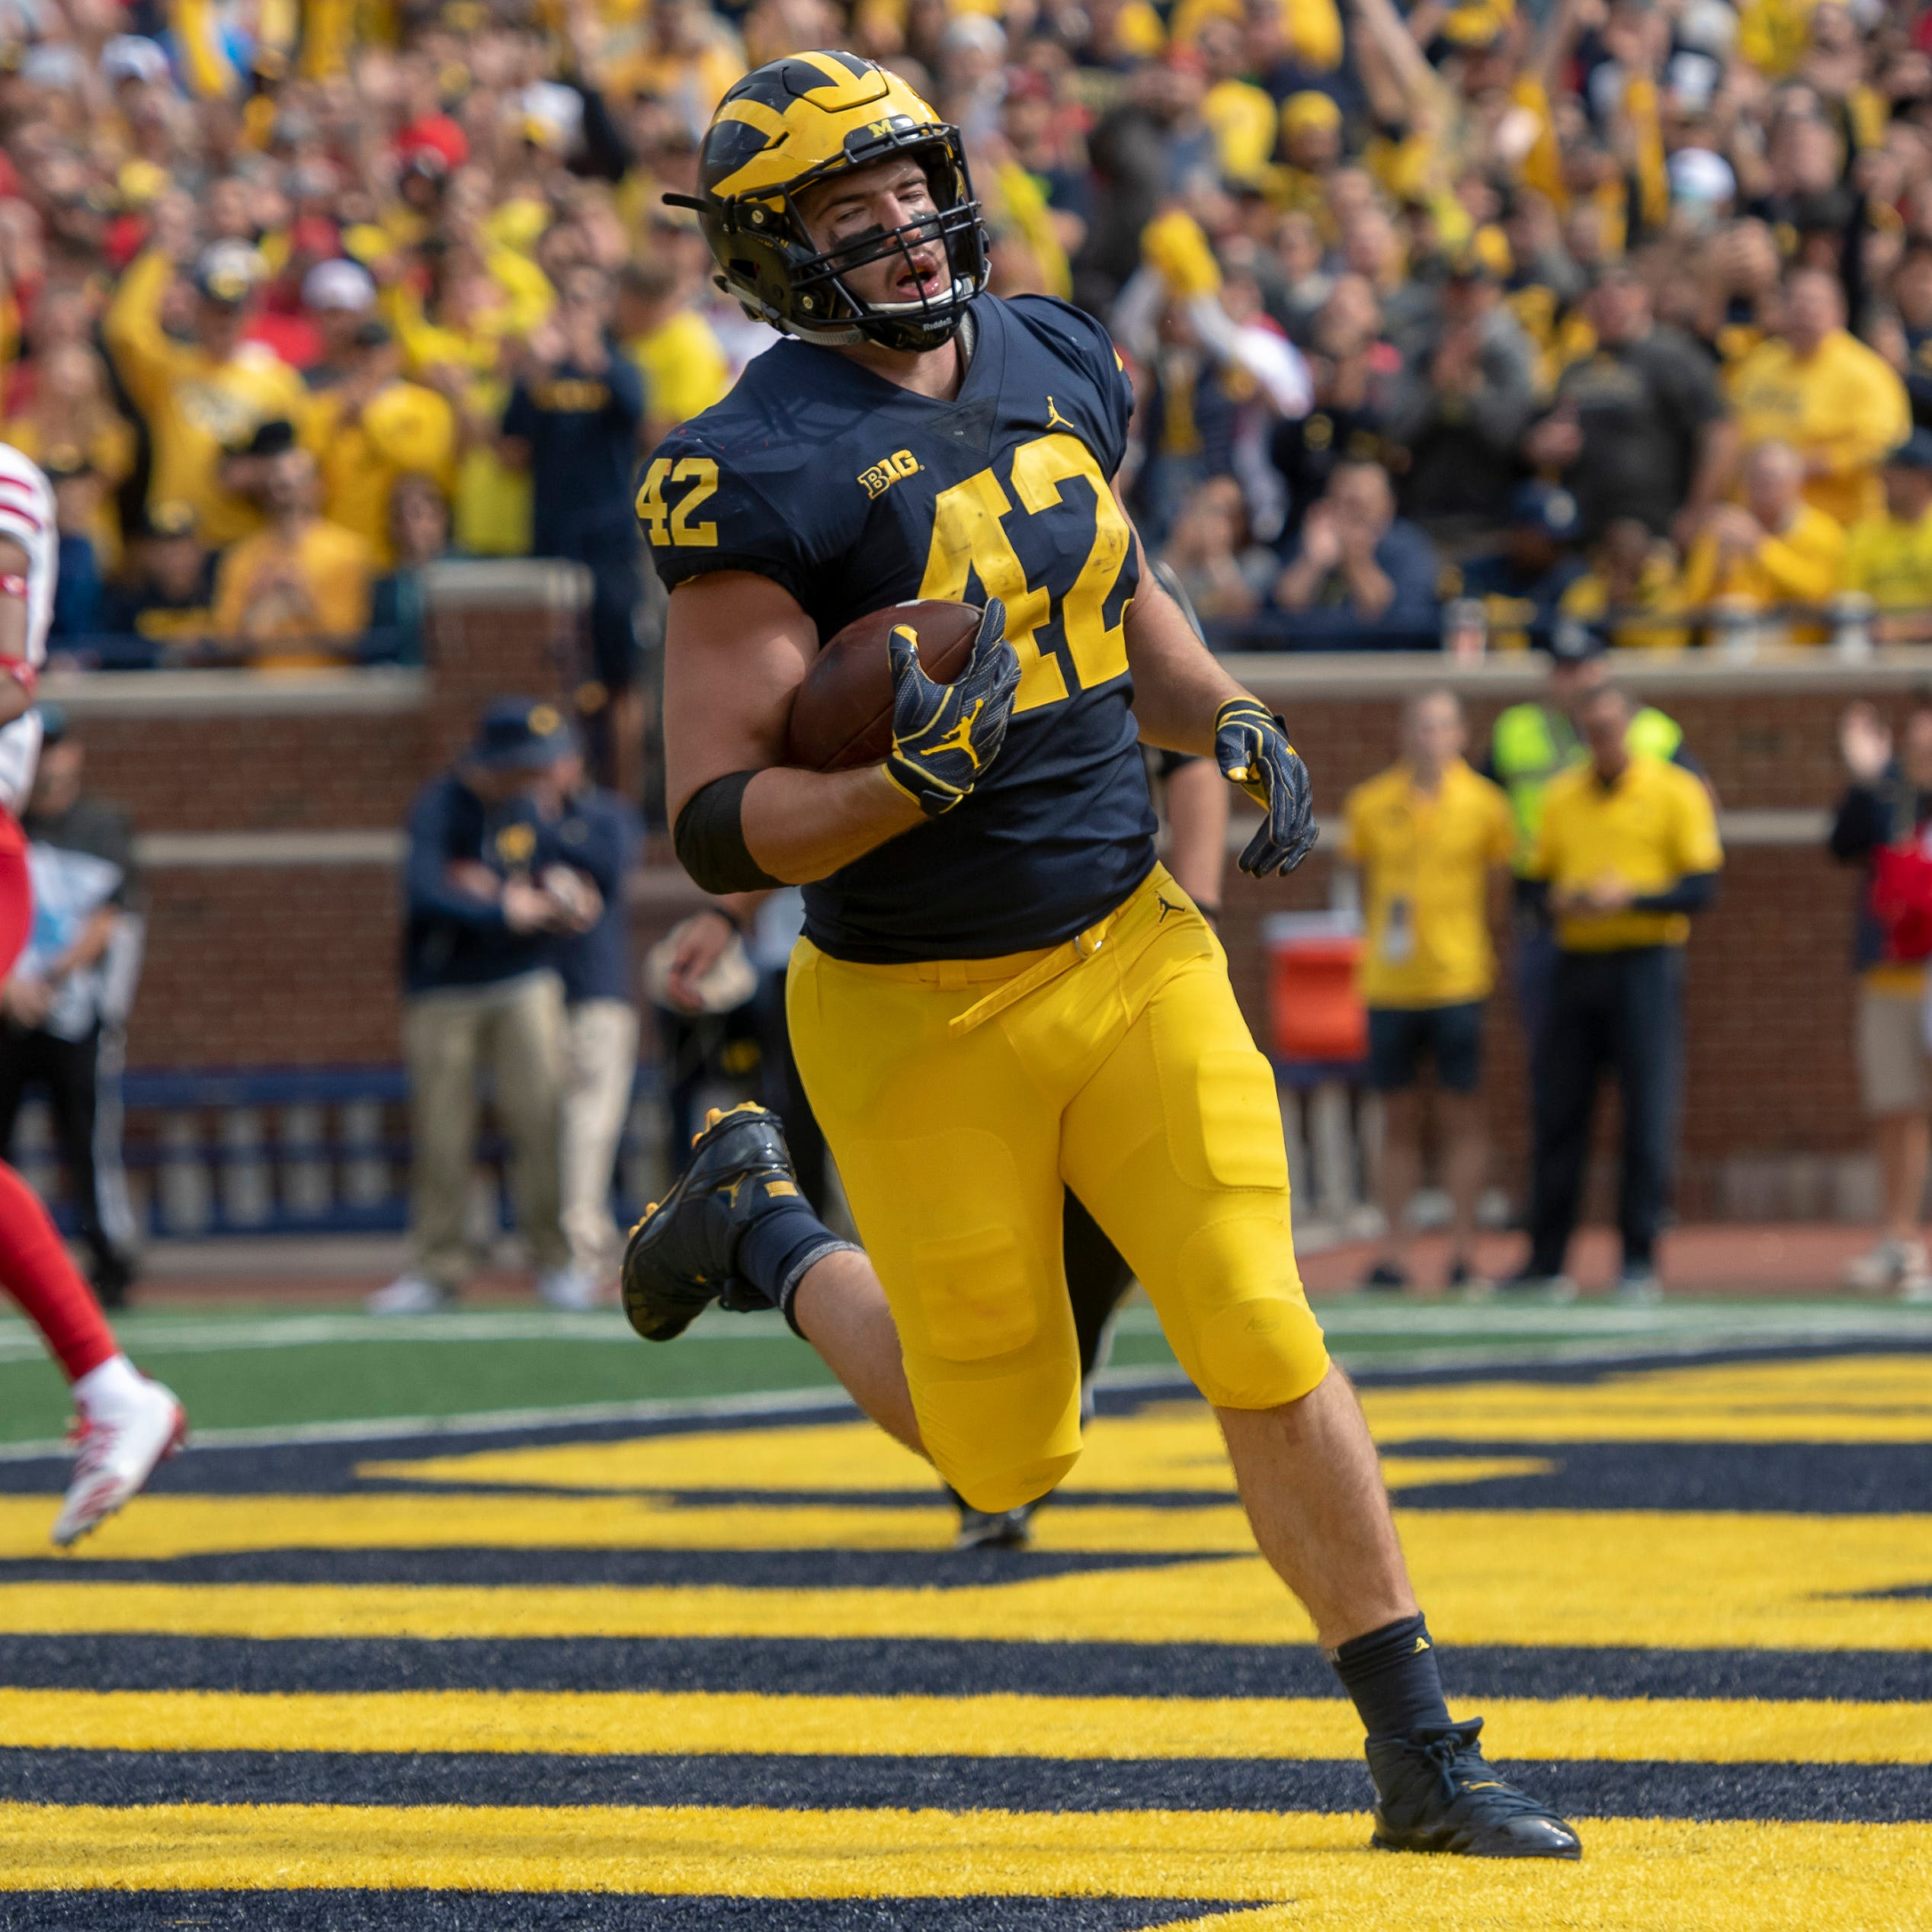 Fullback Ben Mason's 3 TD-performance puts smash-mouth signature on Michigan's crushing victory